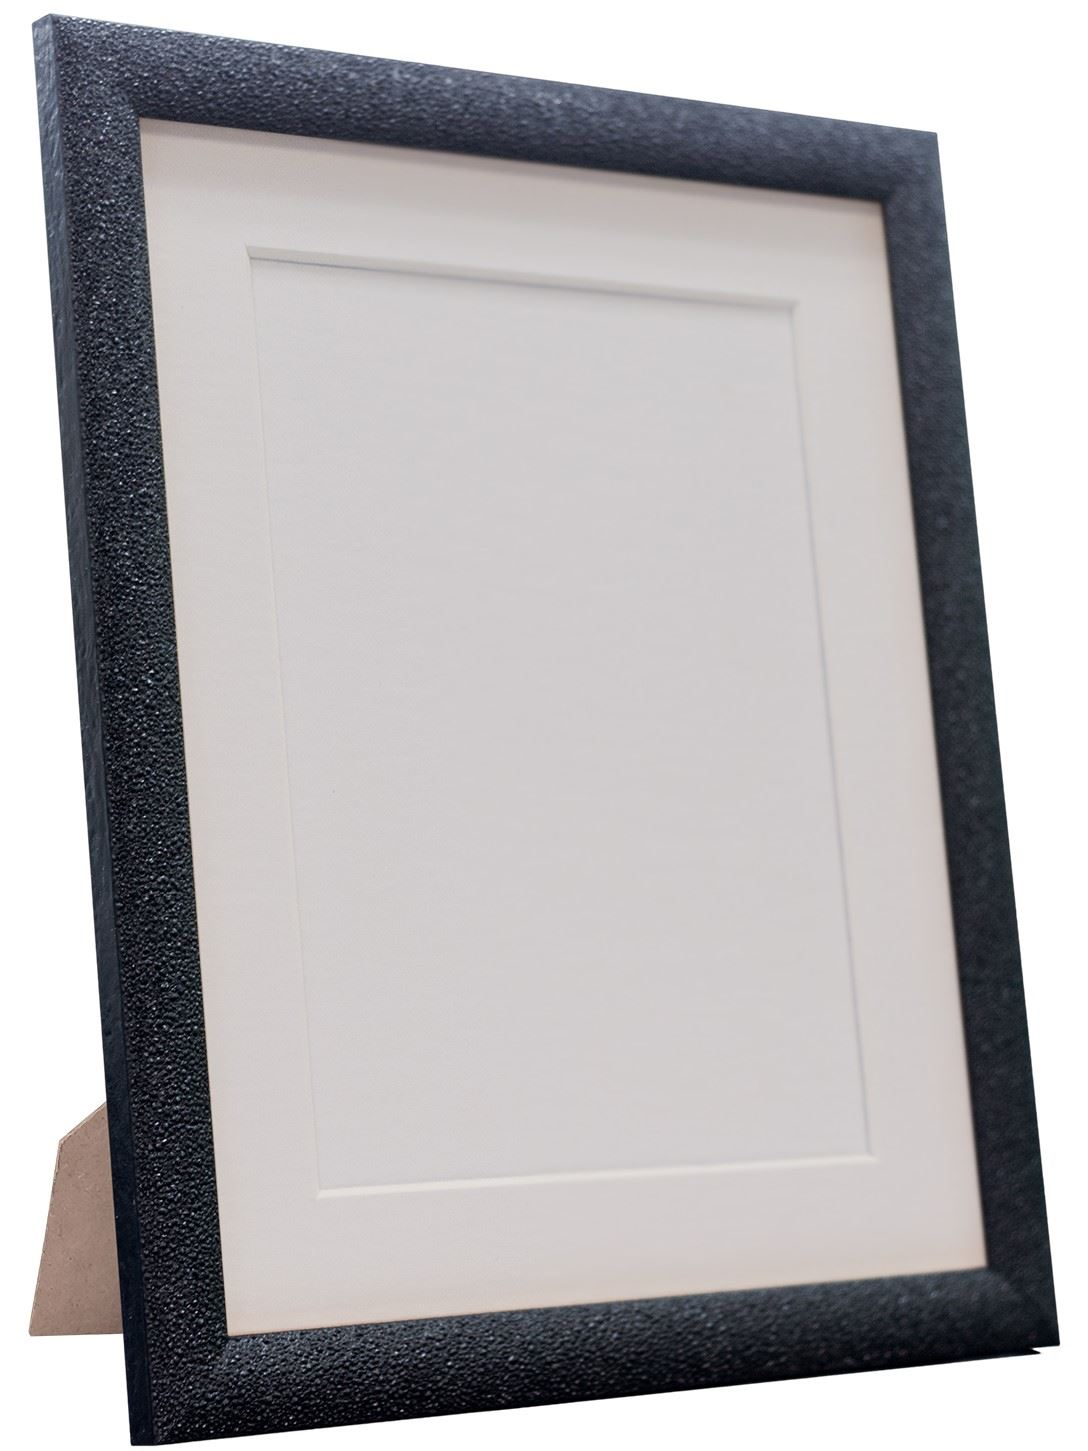 Ivory and Other Mounts Black Glitz Black Picture Photo Frame with White